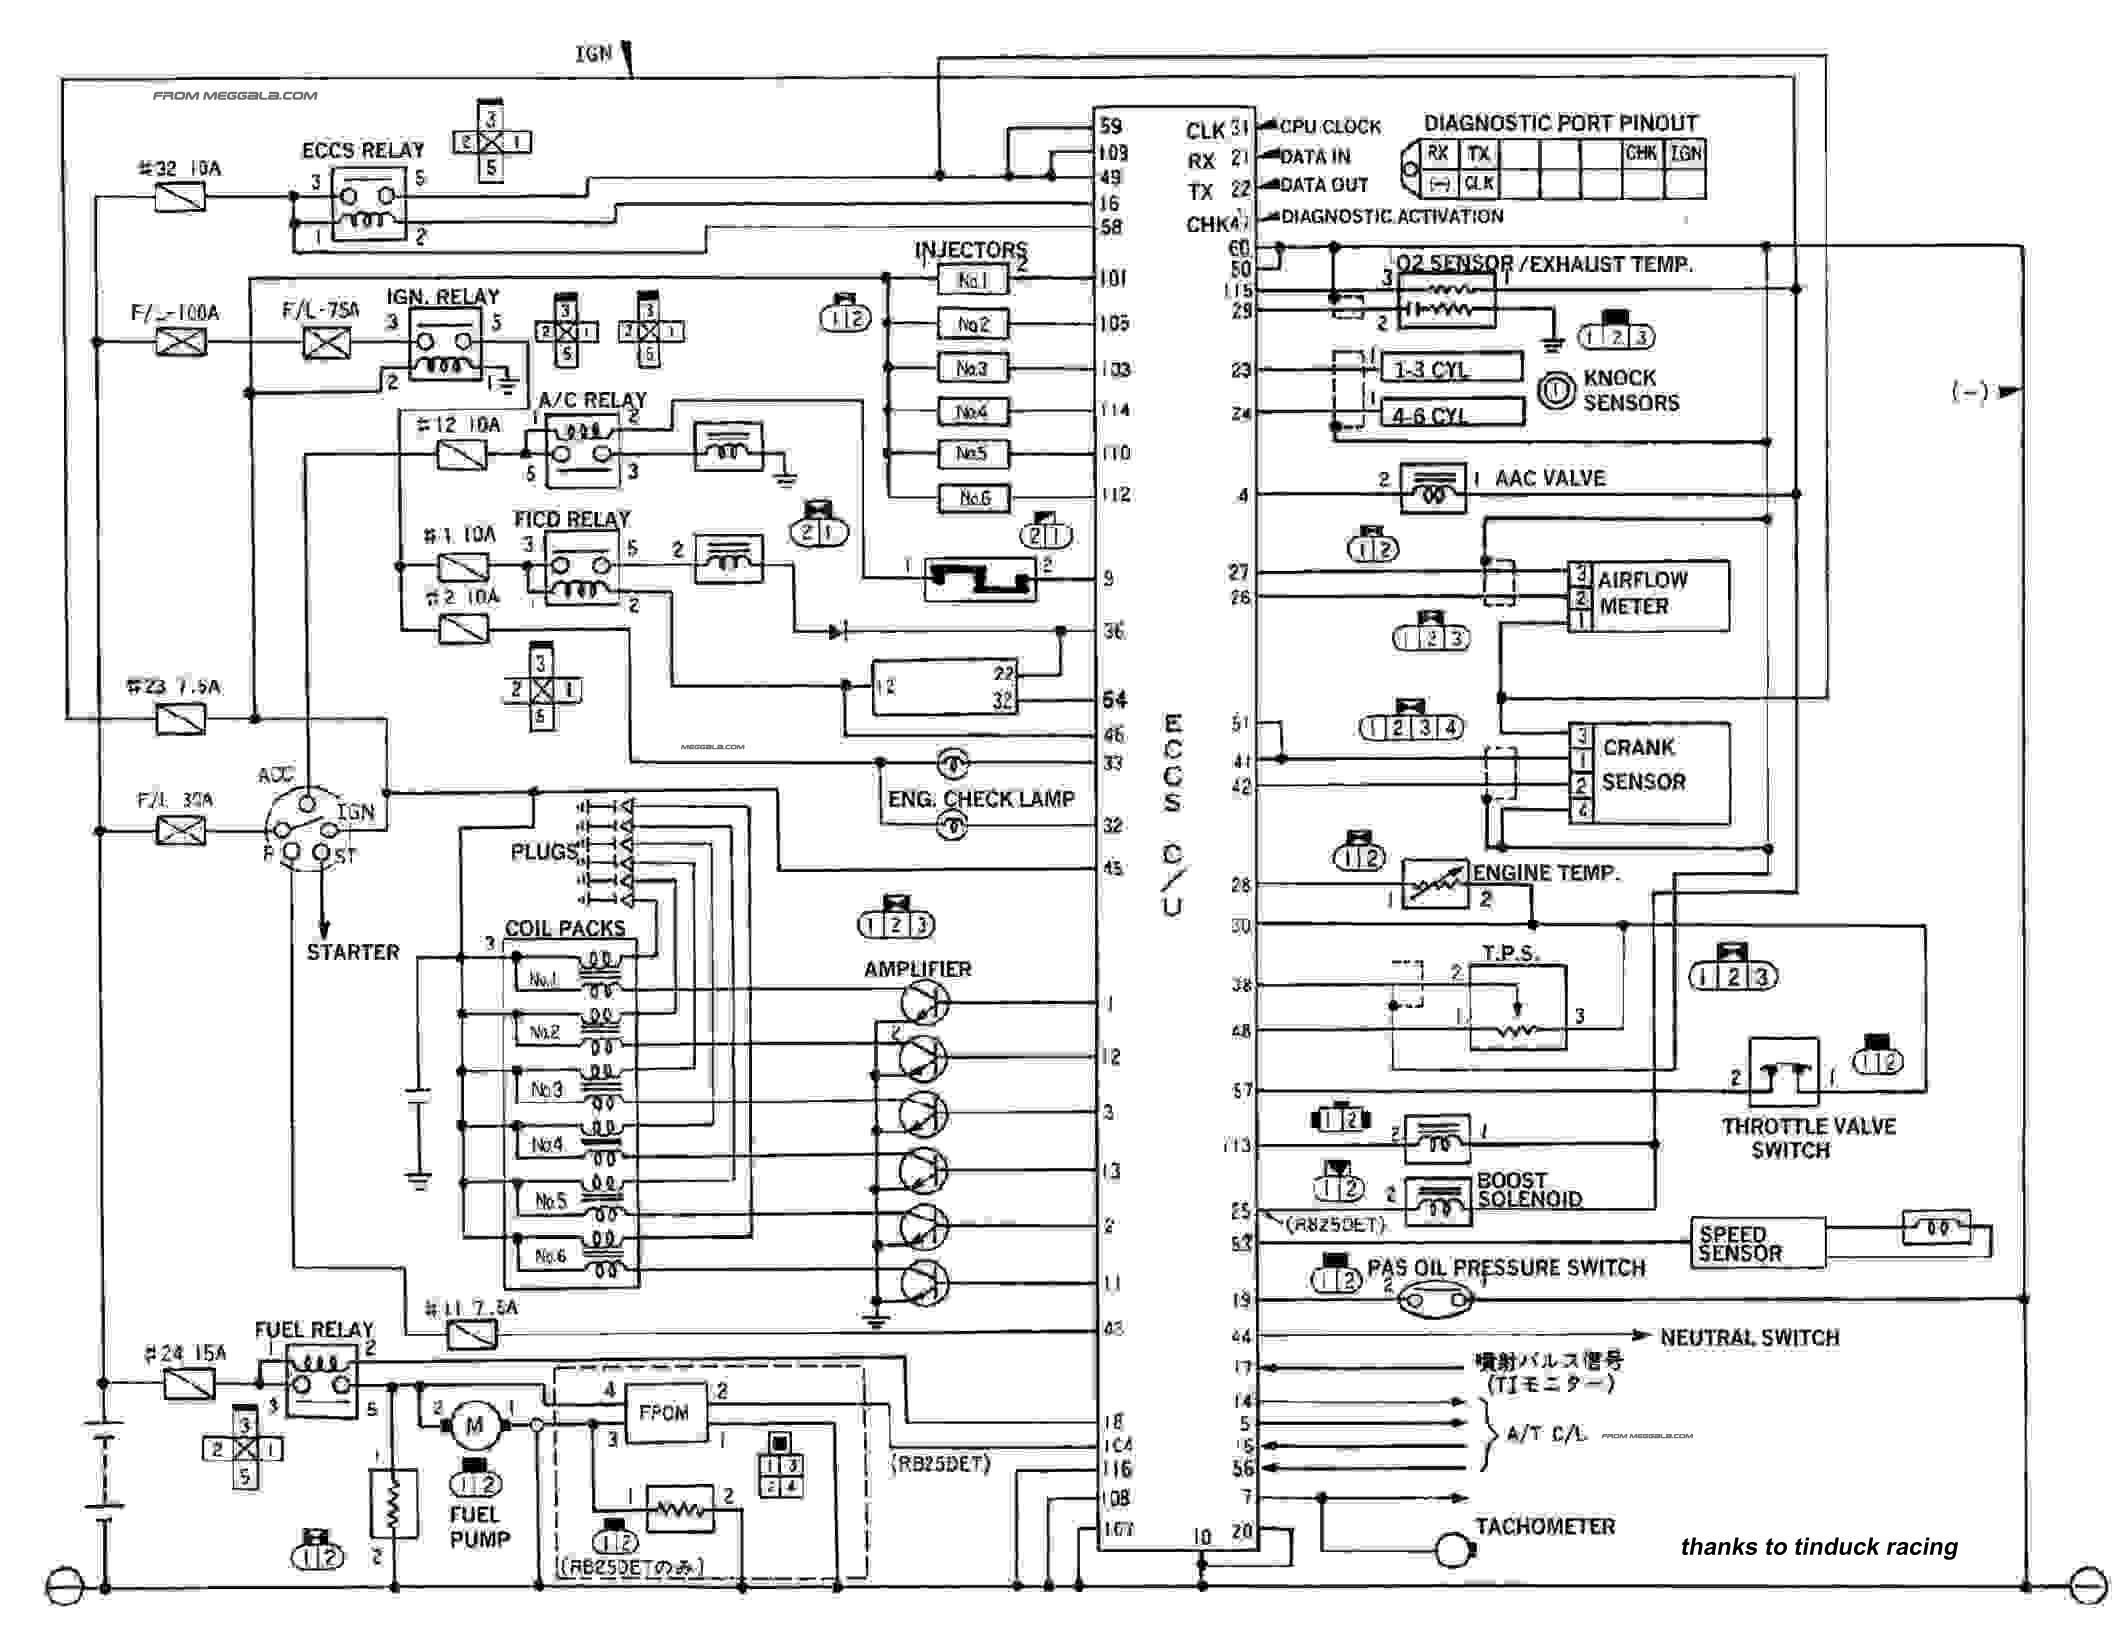 [DIAGRAM_5FD]  44B34 Infiniti I30 Engine Wiring Diagram | Wiring Library | Infiniti I30 Wiring Pcm Harness |  | Wiring Library